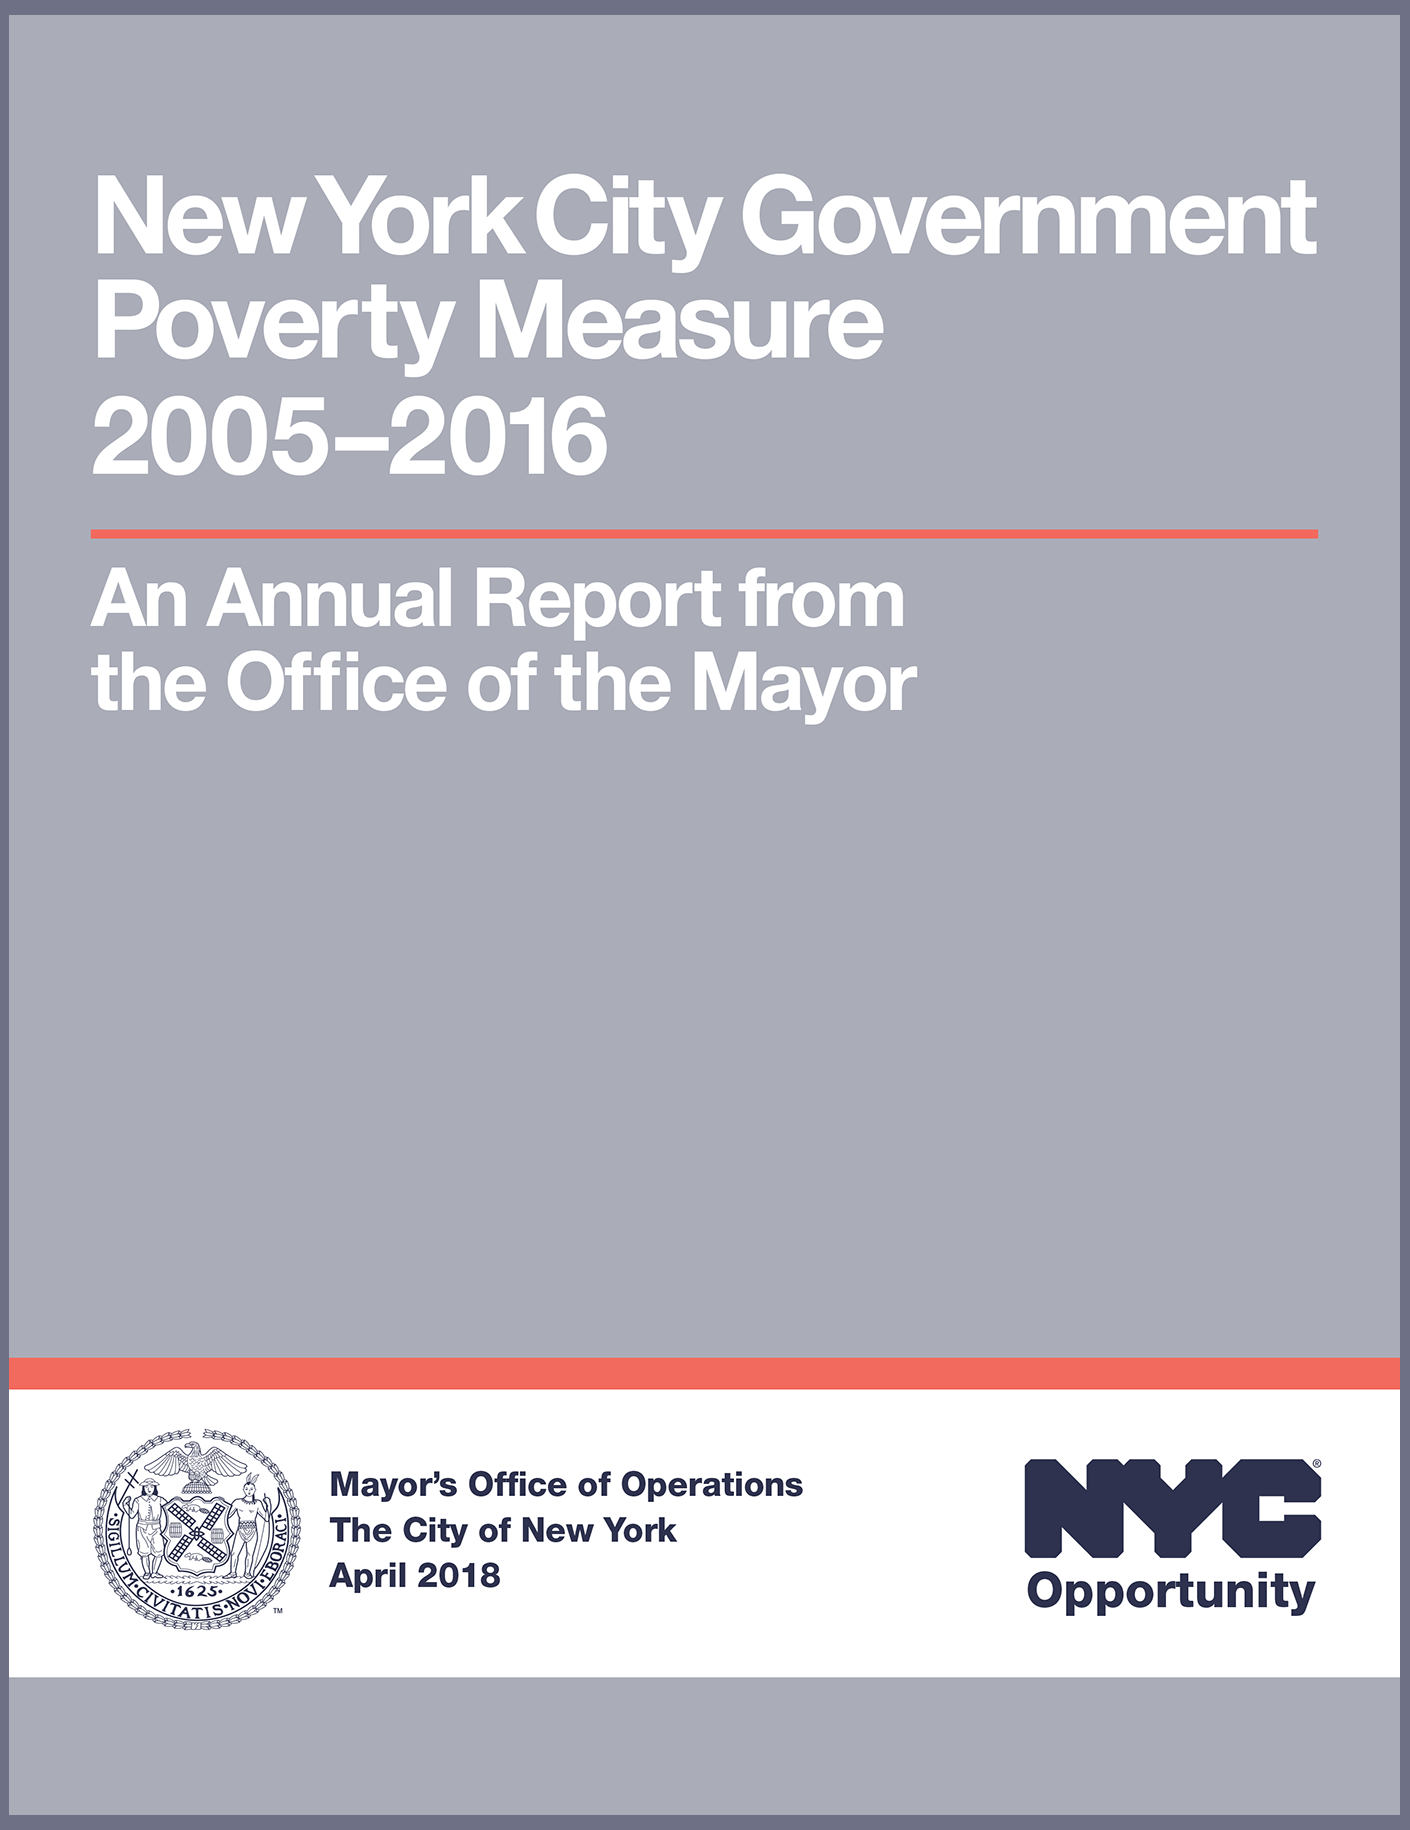 Cover of the NYC Government Poverty Measure 2005-2016 Report